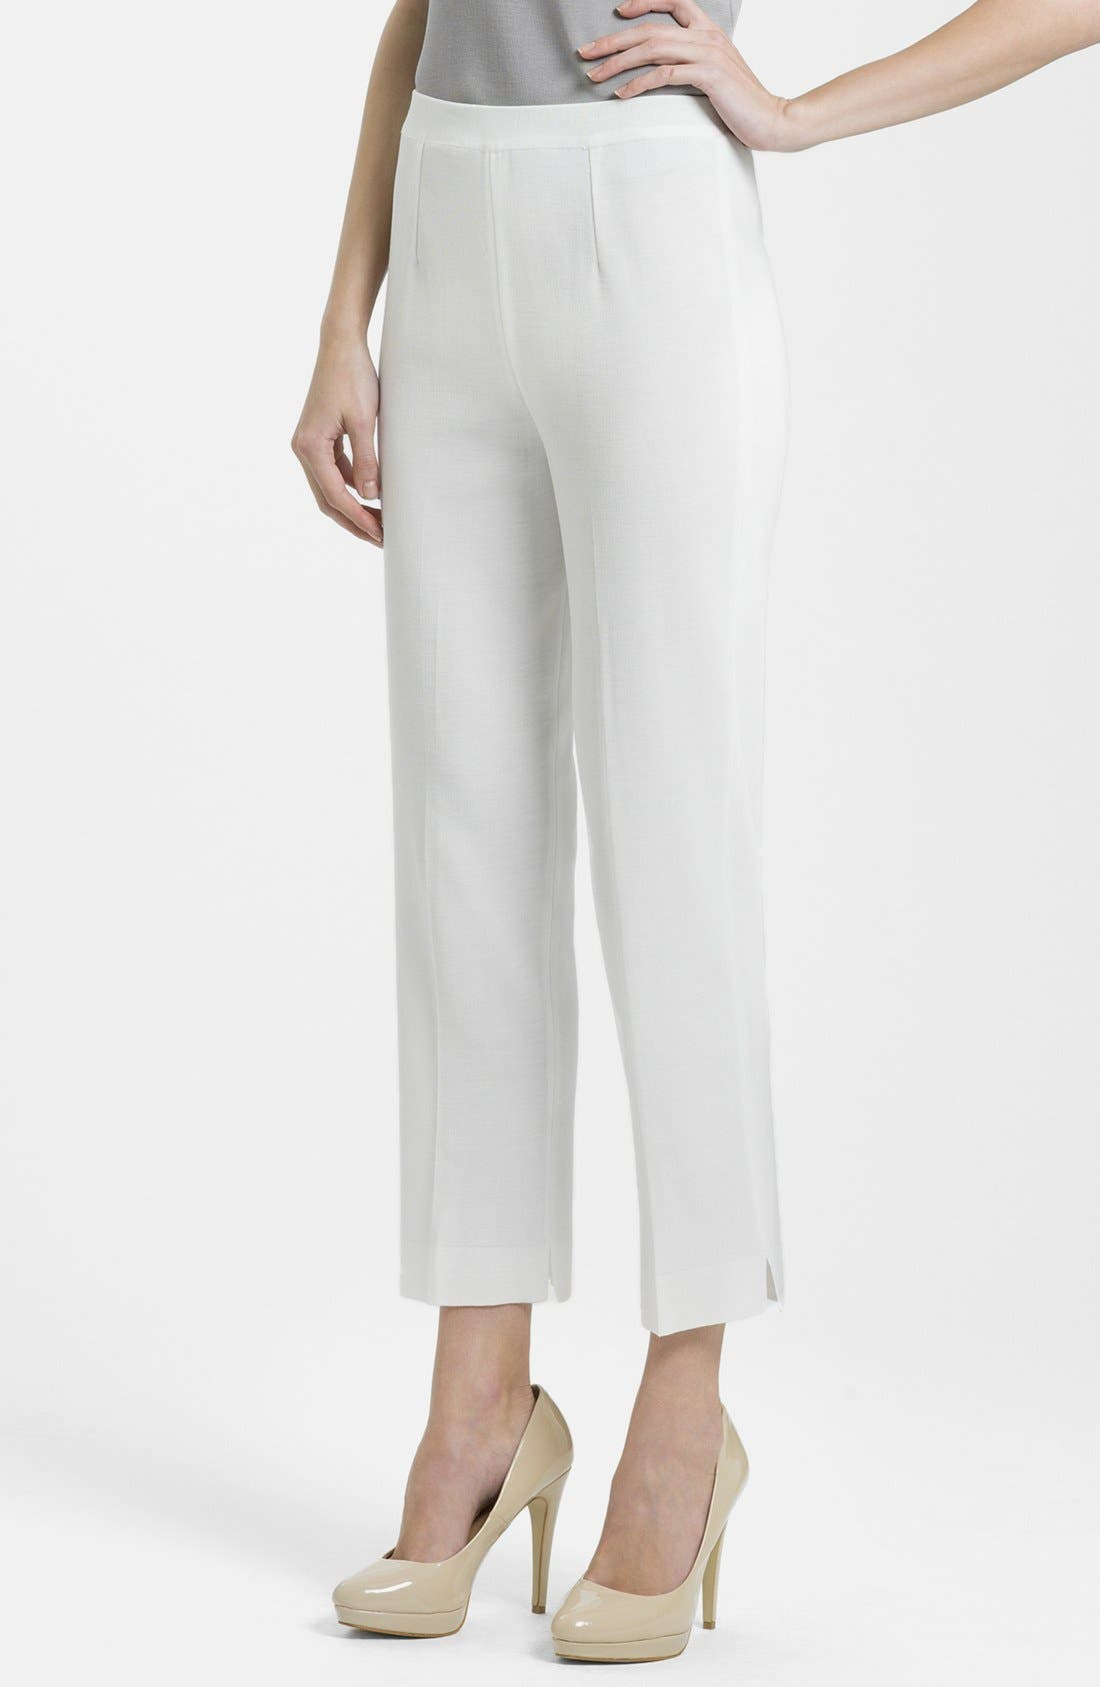 Alternate Image 1 Selected - Ming Wang Lined Ankle Pants